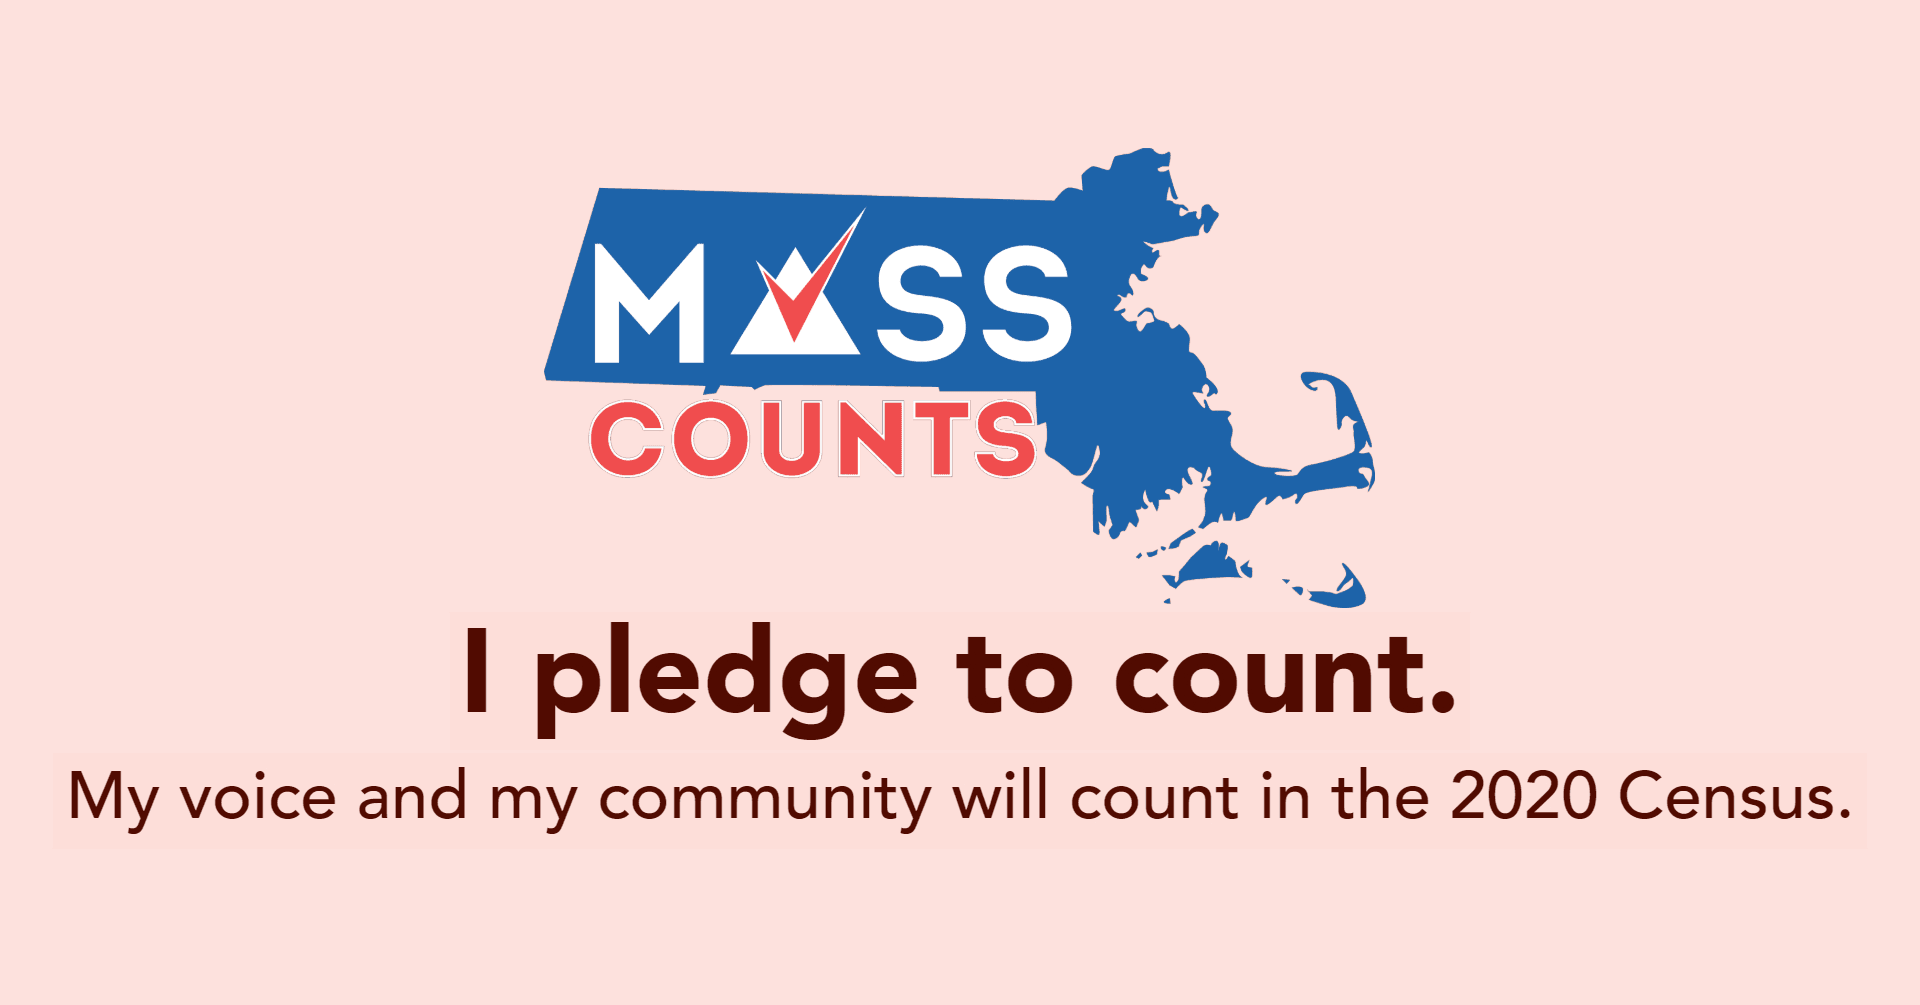 I pledge to count. My voice and my community will count in the 2020 Census. #MassCounts